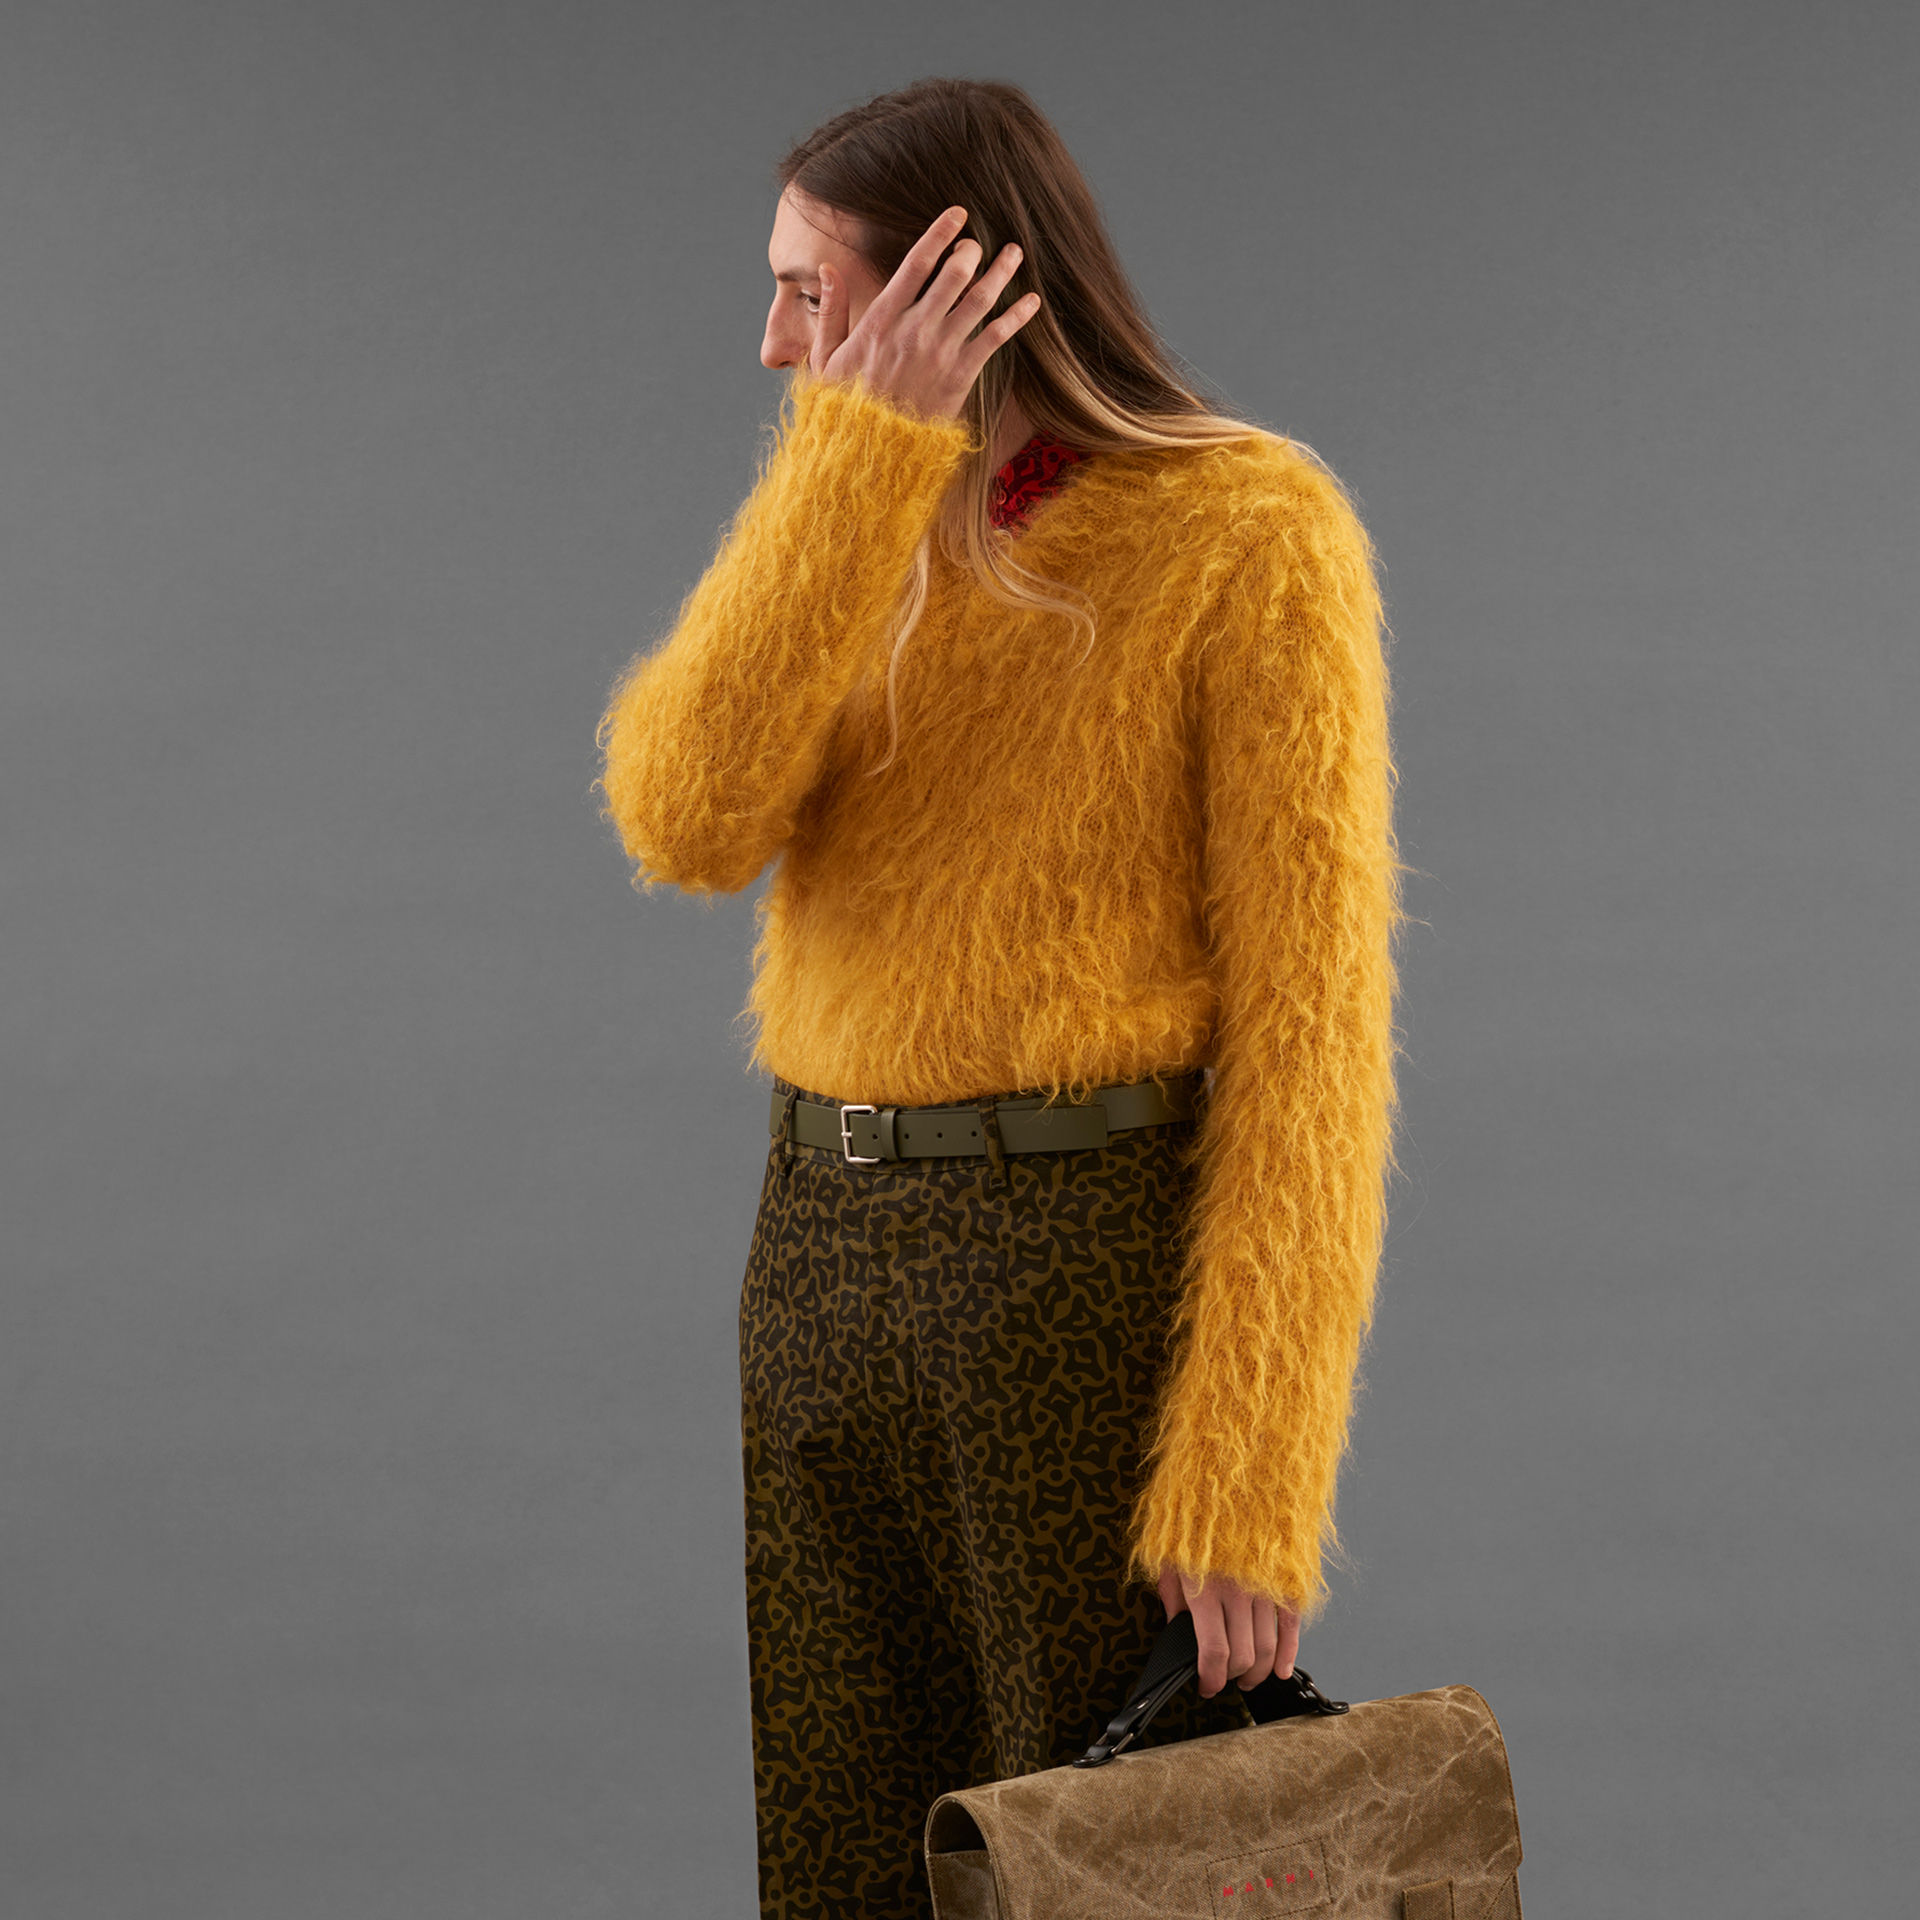 Model wears yellow brushed sweater and camo print pants